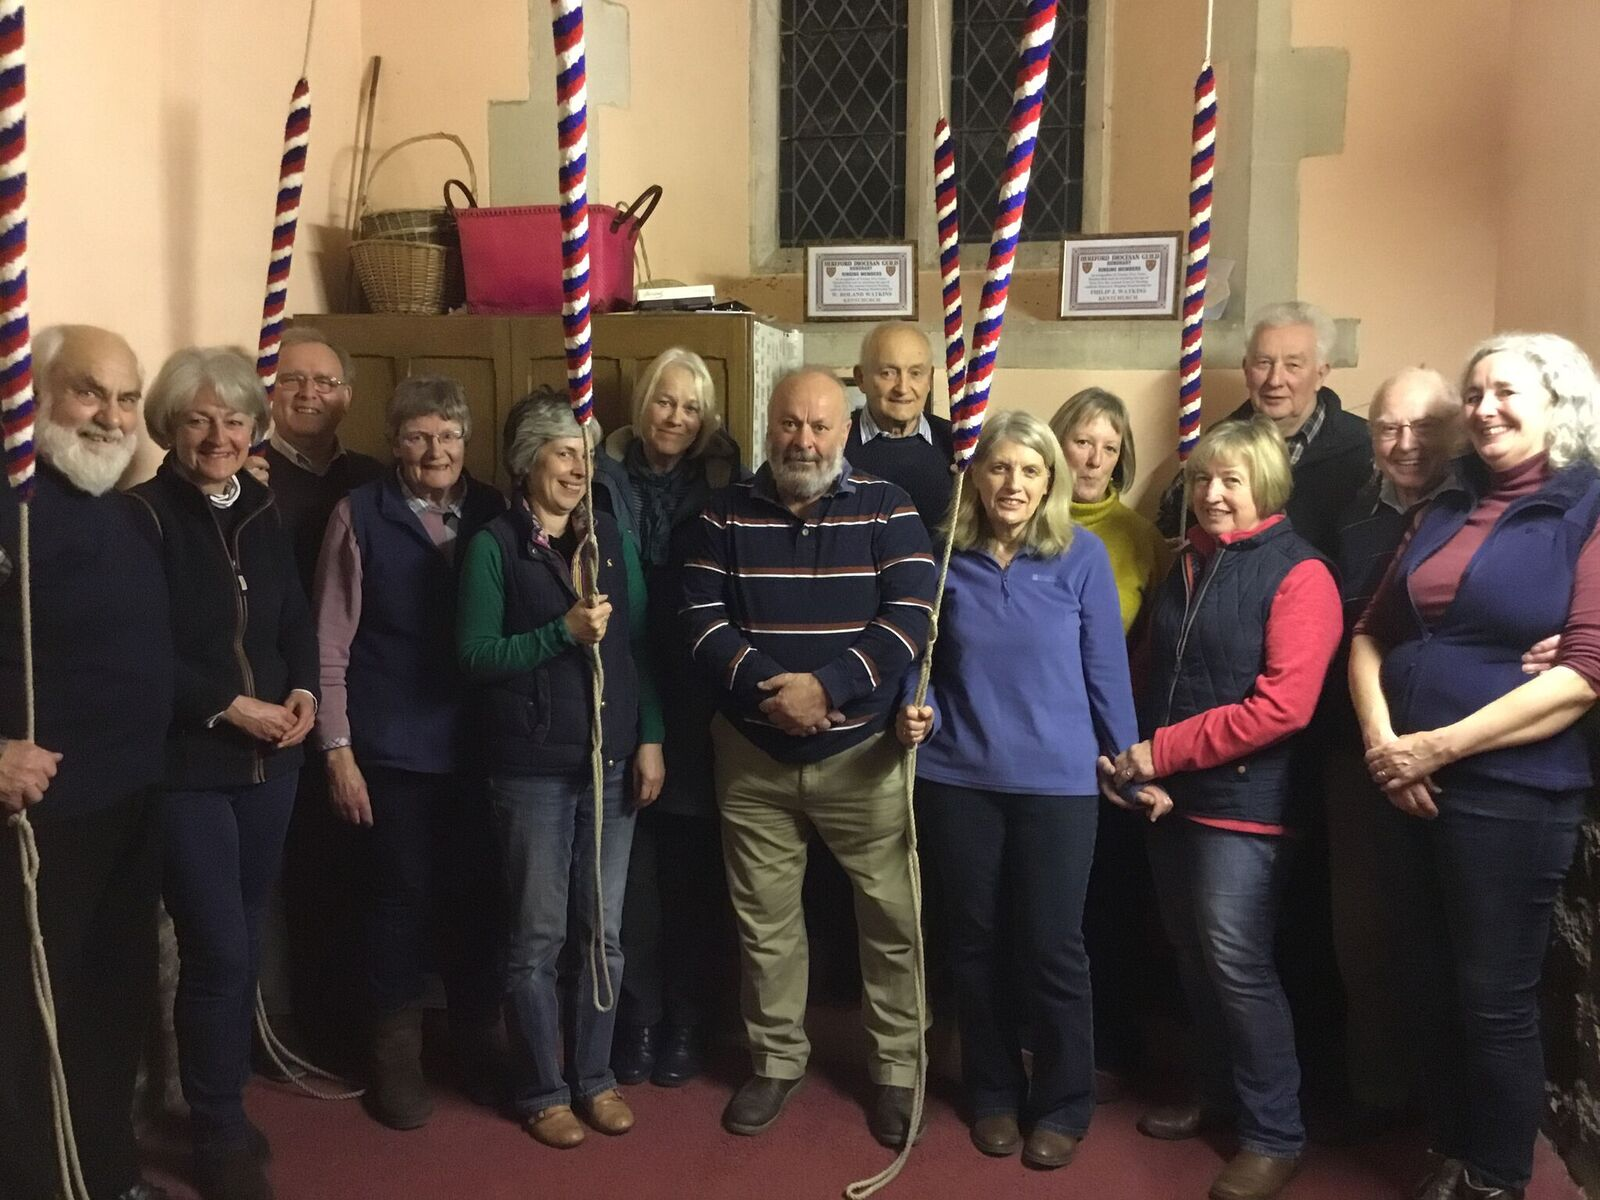 The bell ringers meet on alternate Thursdays at 7.30pm. Please email if you would like to join us